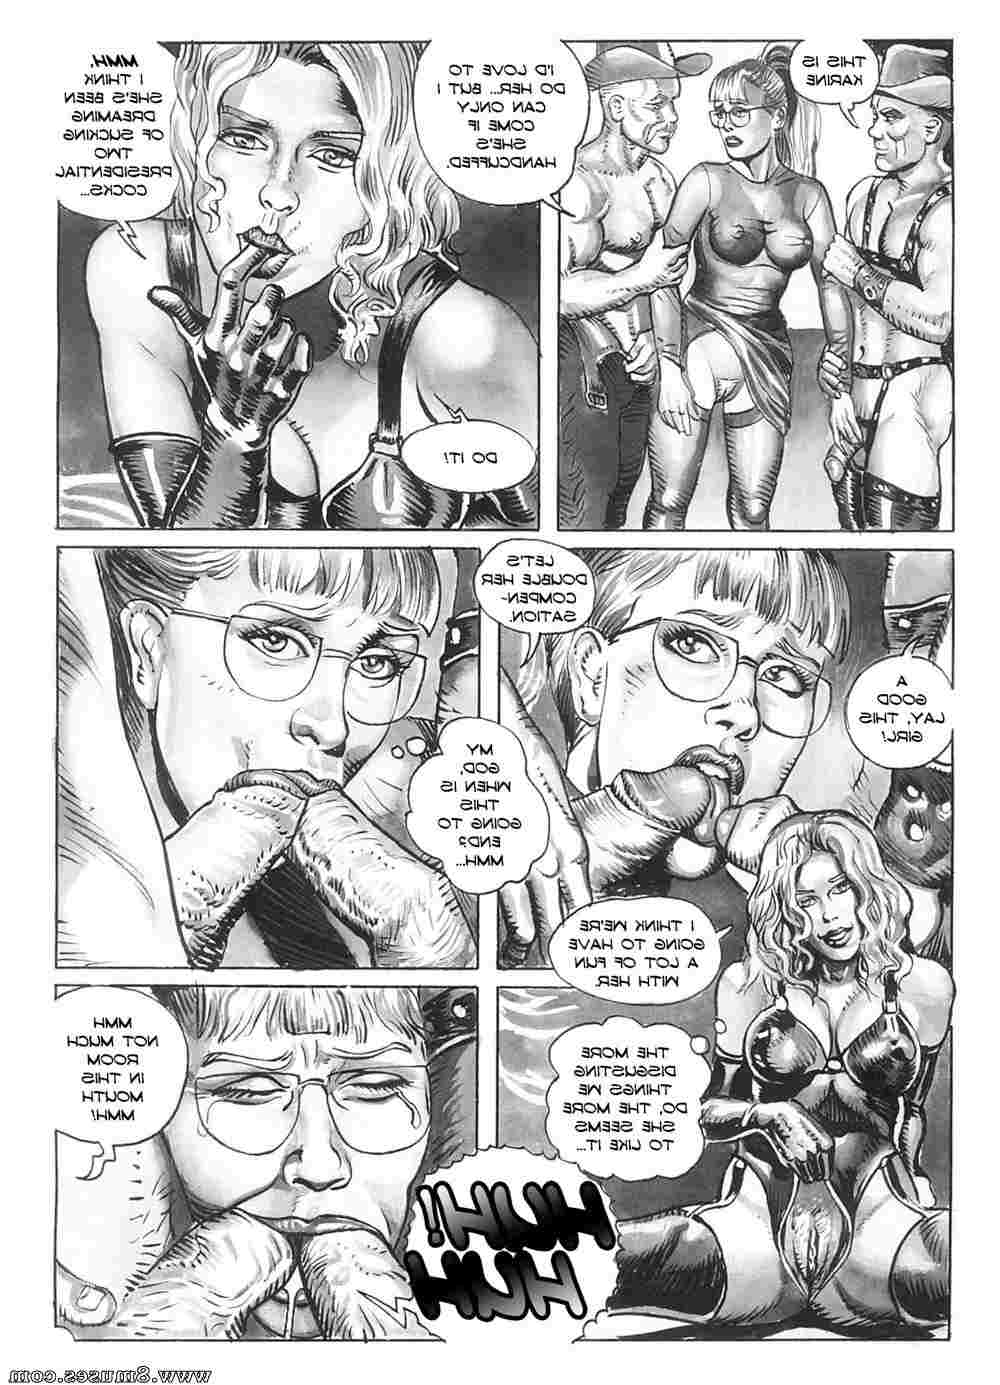 Bruno-Coq-Comics/The-Secretary The_Secretary__8muses_-_Sex_and_Porn_Comics_44.jpg